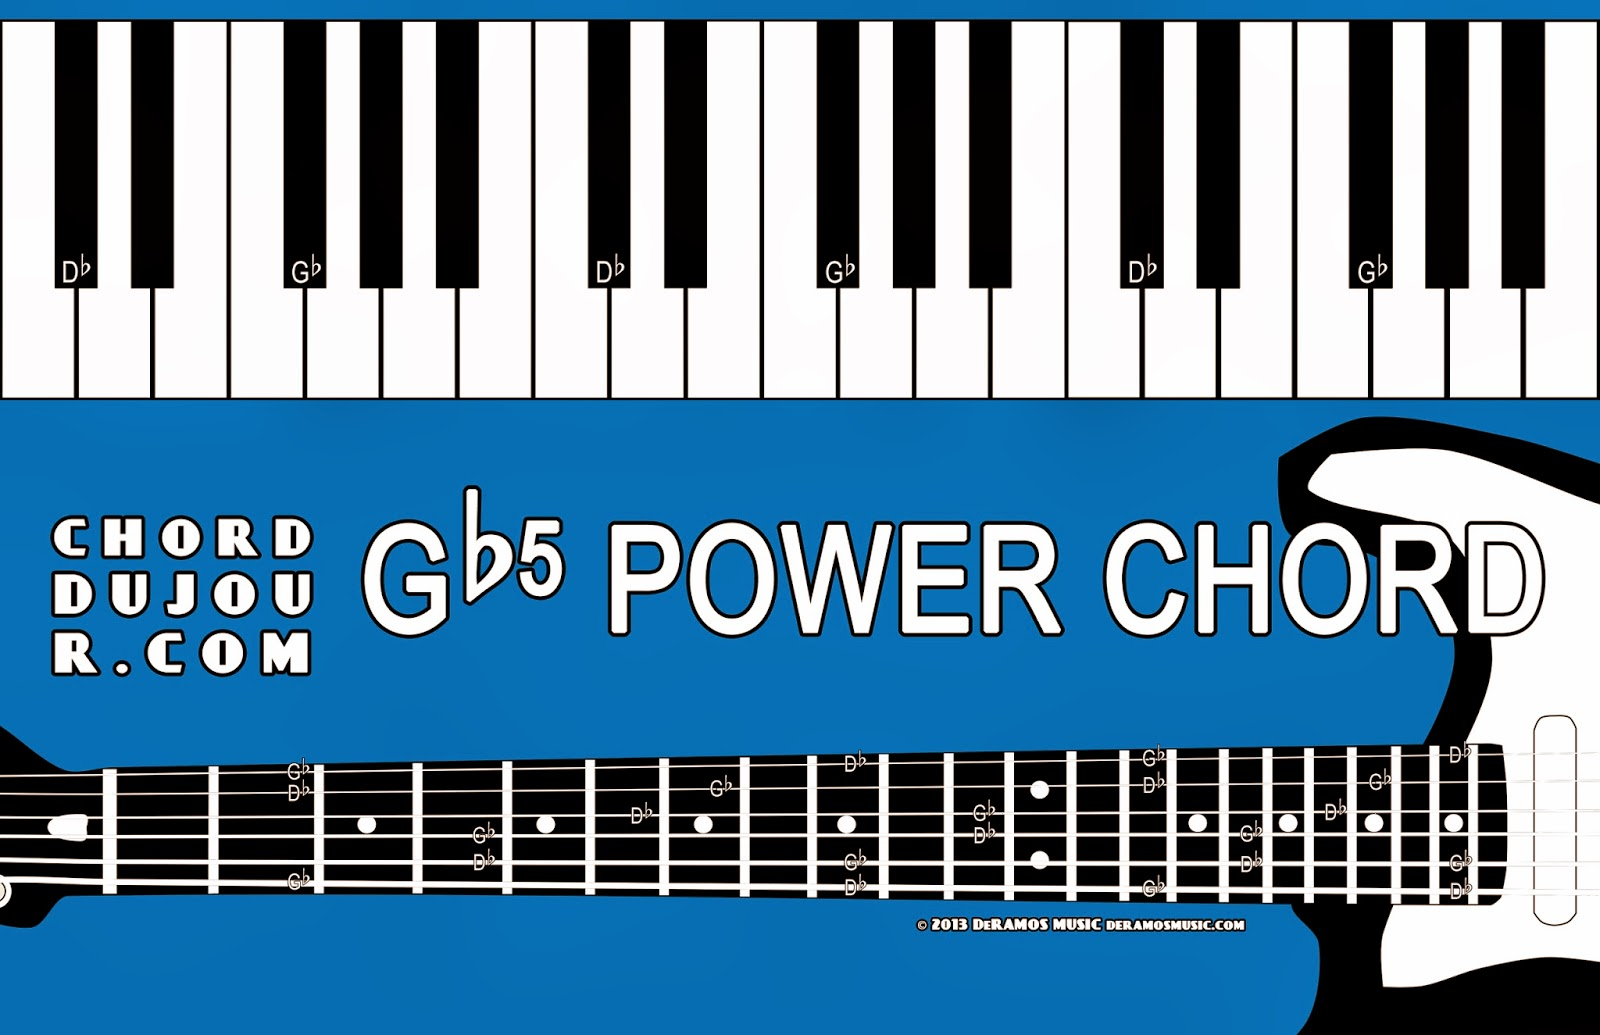 Chord du jour dictionary gb5 power chord dictionary gb5 power chord hexwebz Gallery